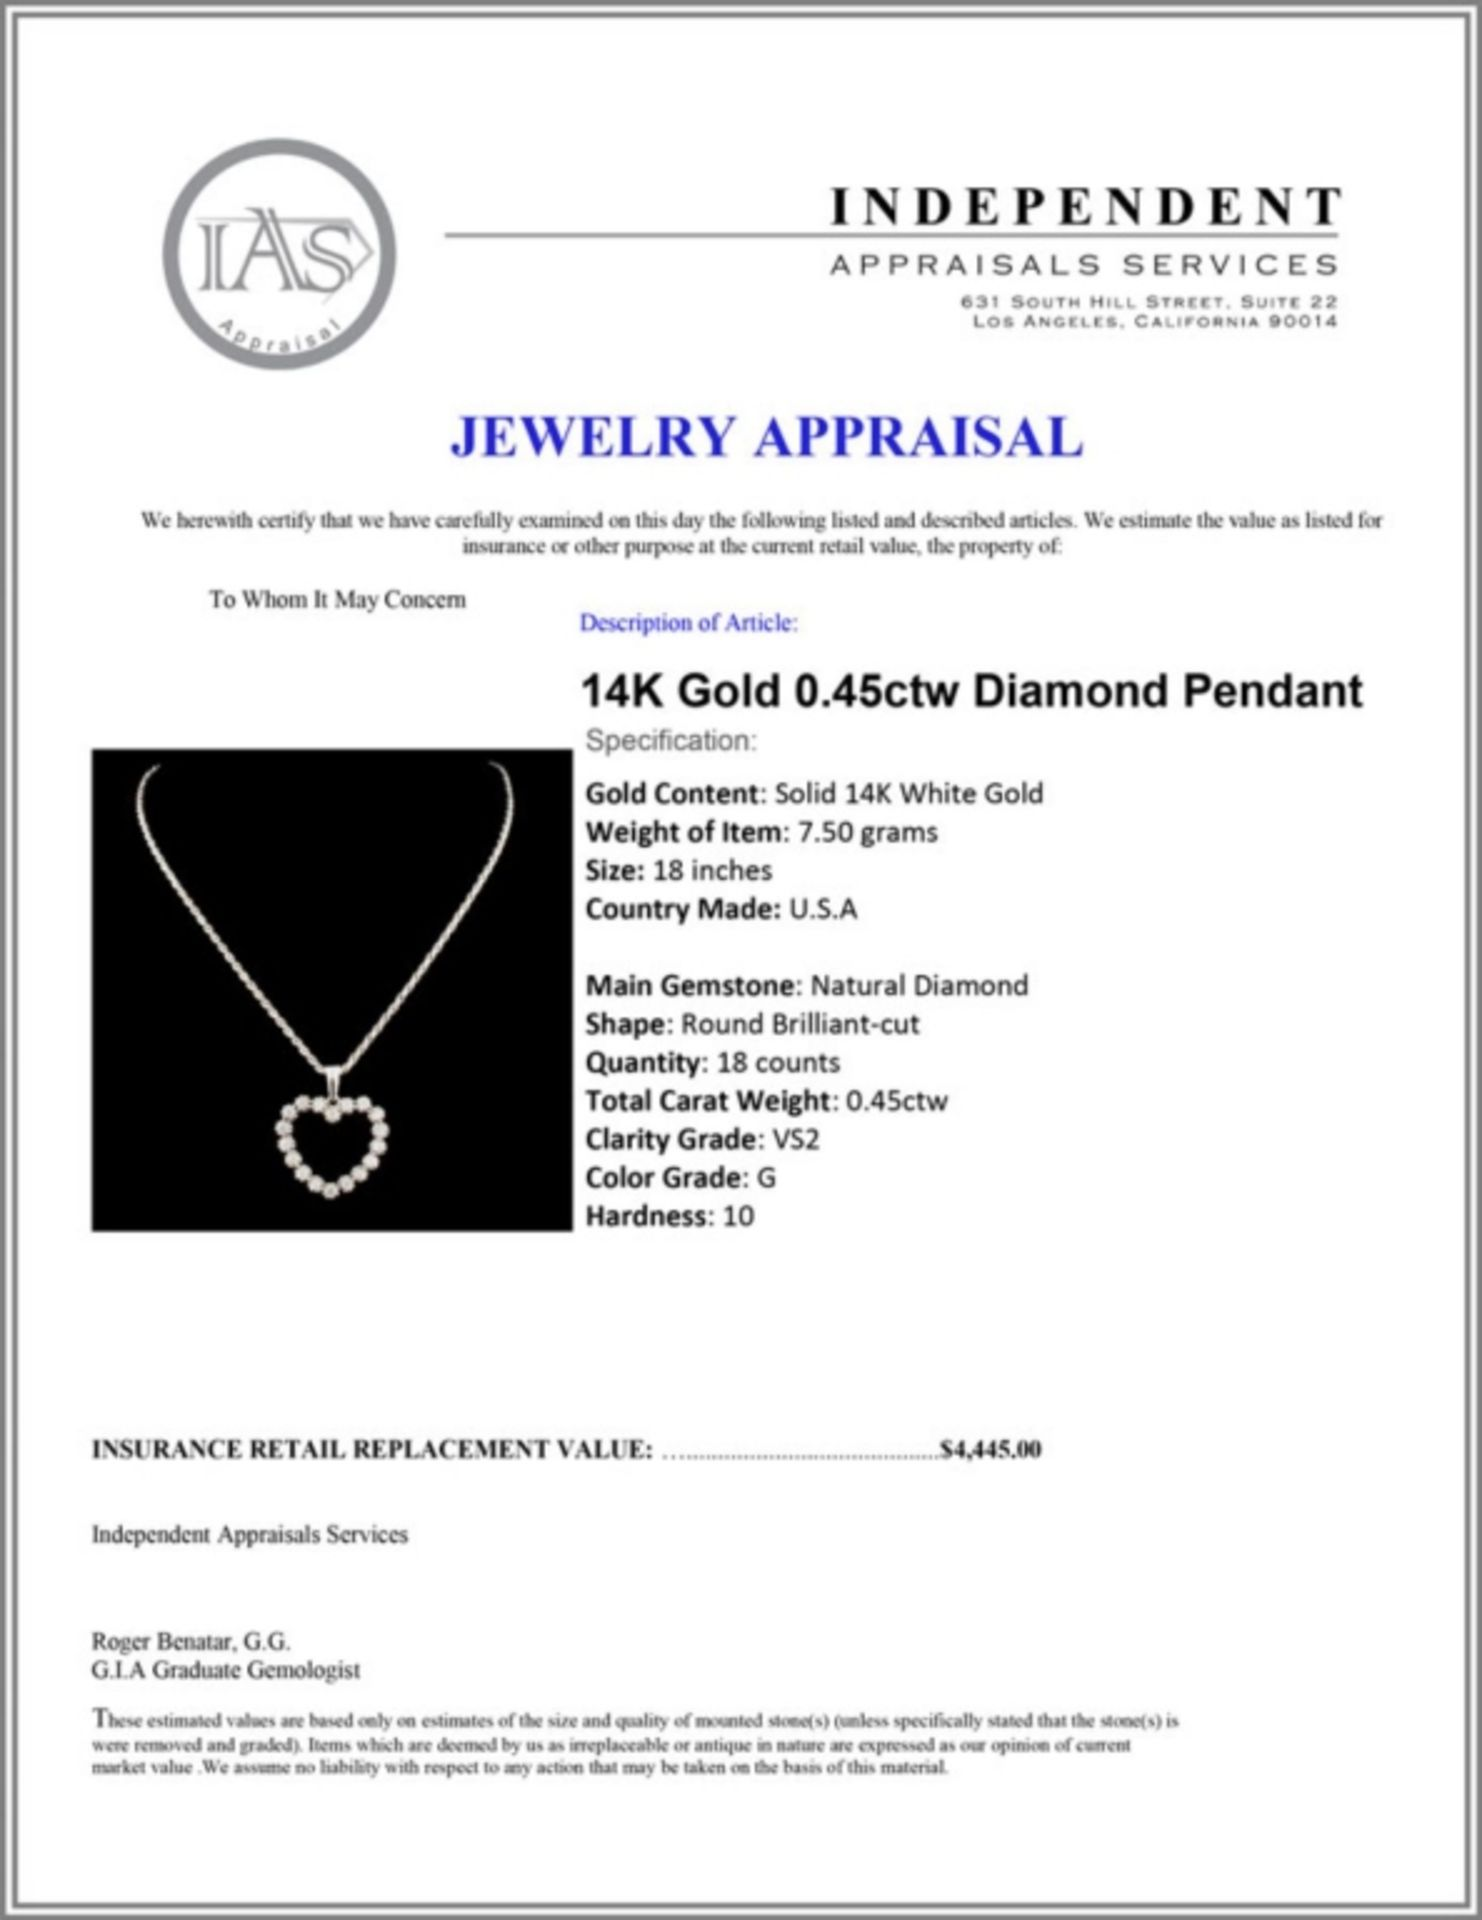 14K Gold 0.45ctw Diamond Pendant - Image 4 of 4